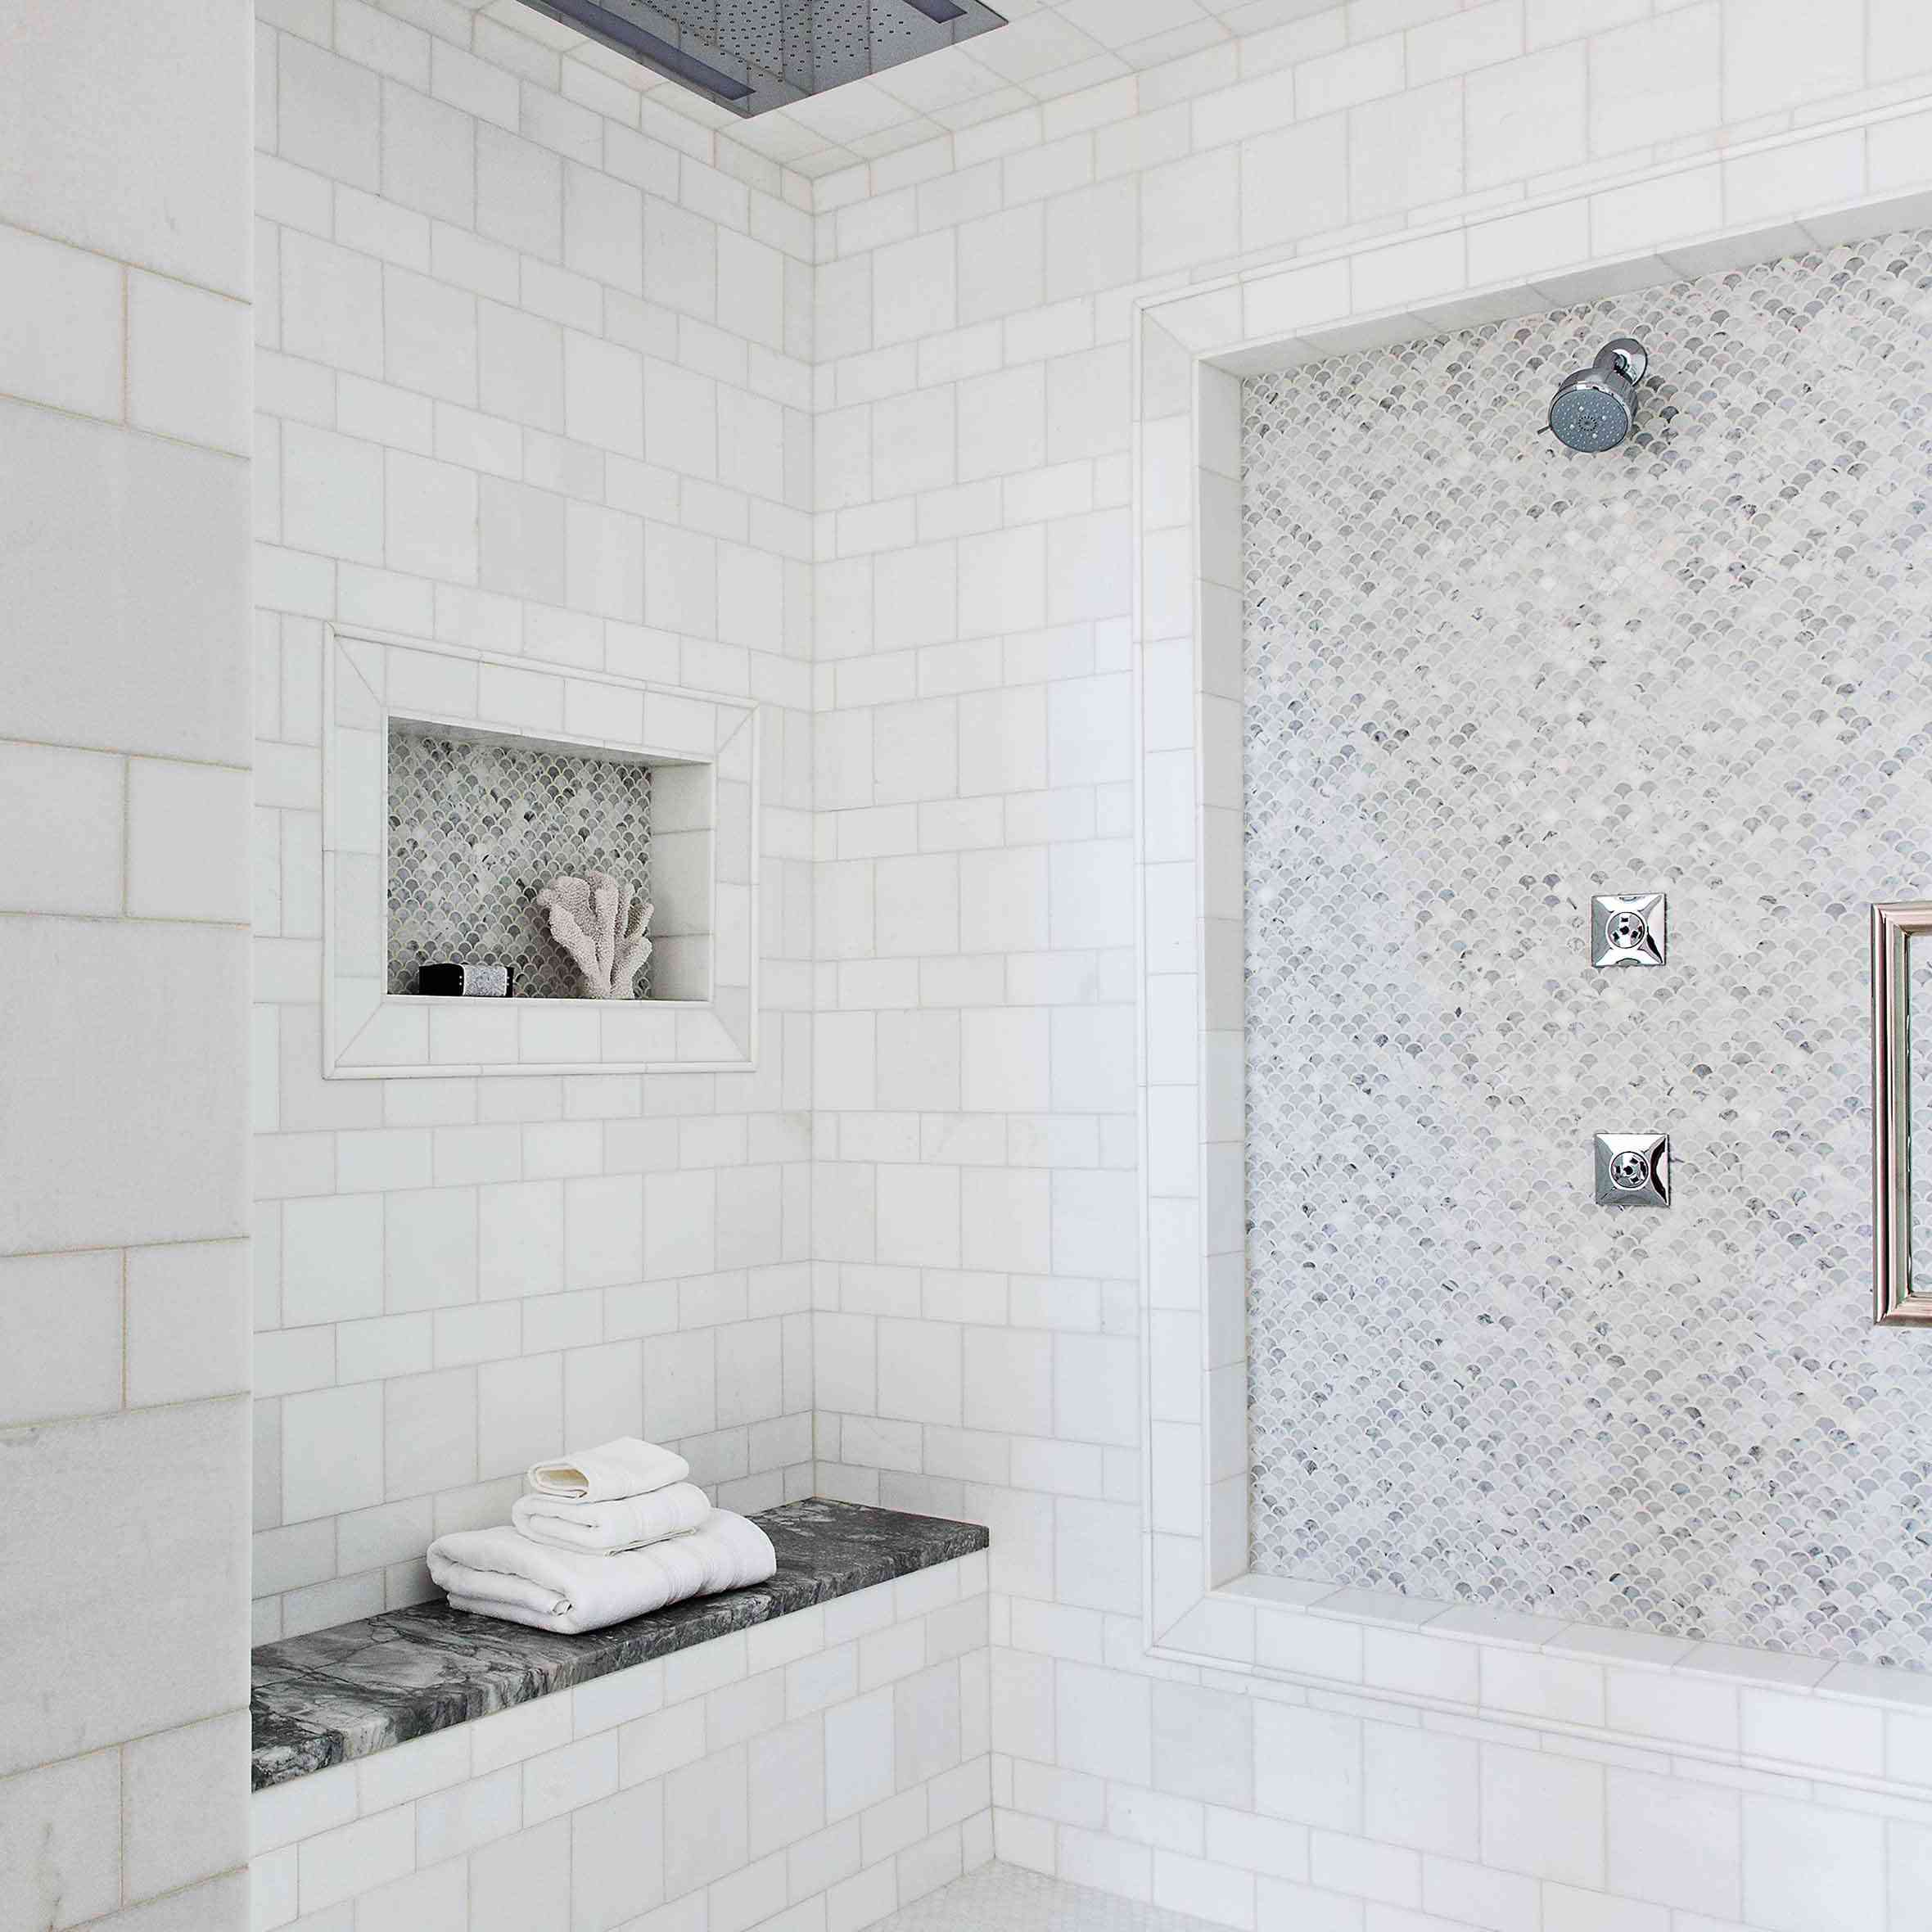 A shower lined with three different kinds of tile